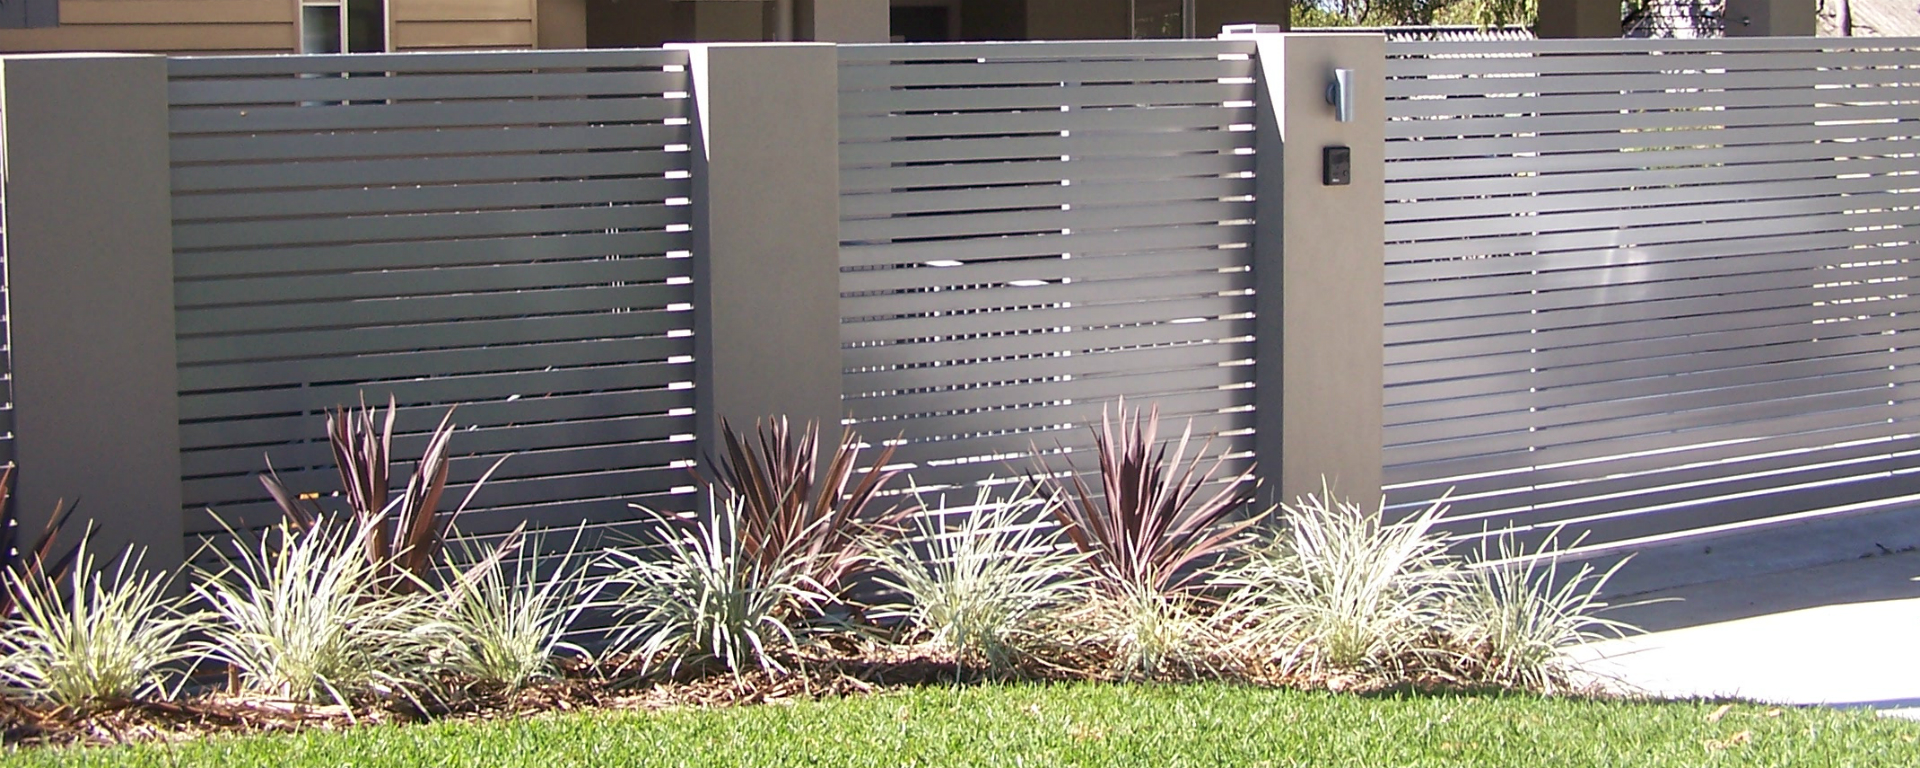 Welcome To All Fab Qld Specialist In Aluminium Louvre